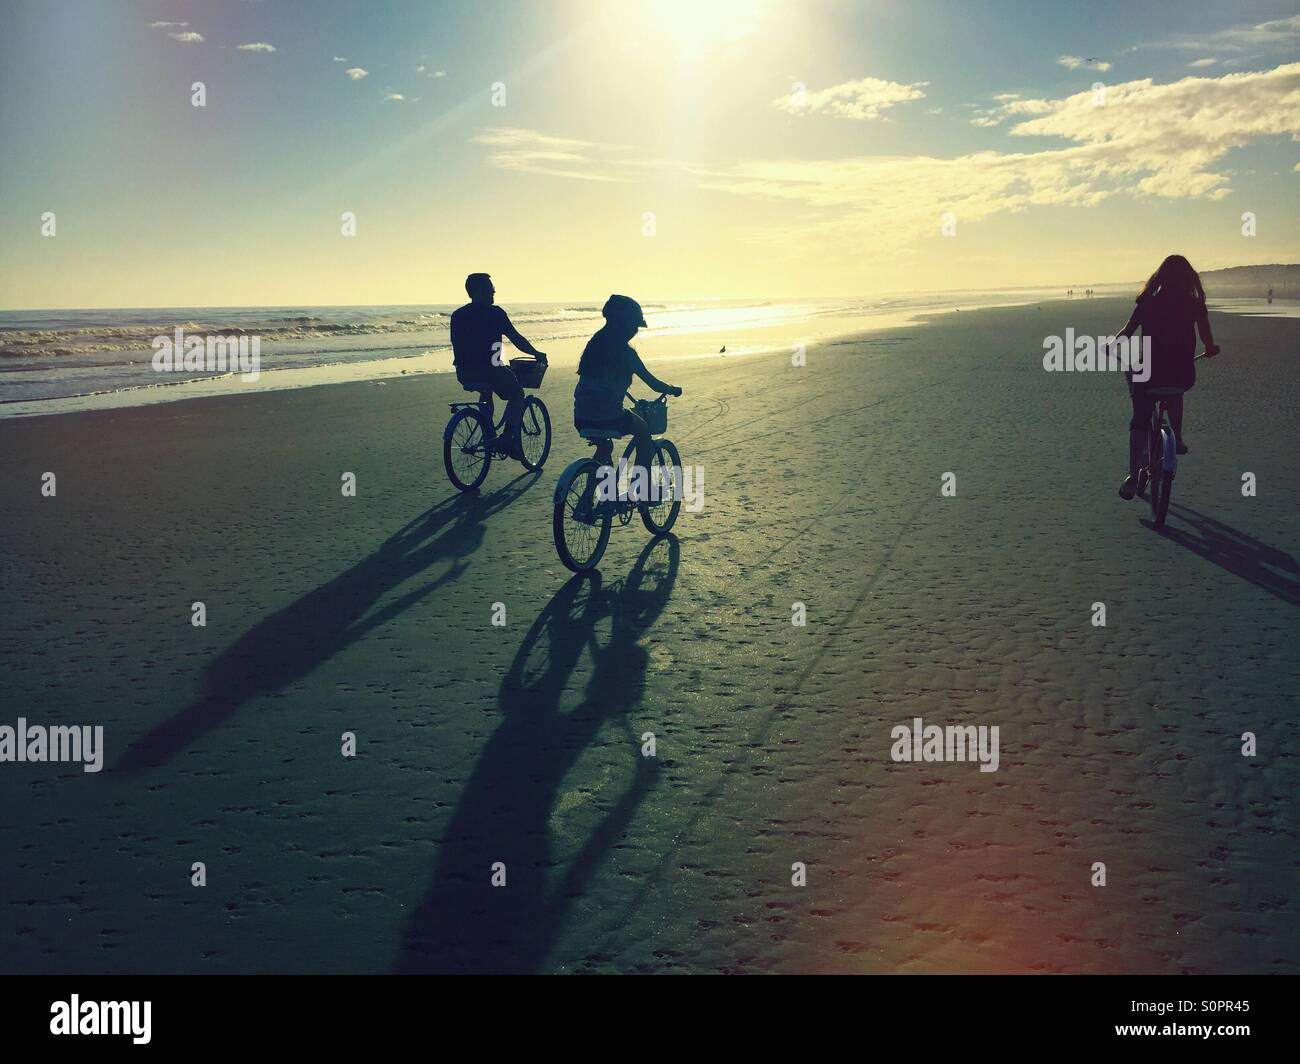 A family bike rides into the sun on the beach at Kiawah Island, SC. They are silhouetted against the sky. - Stock Image